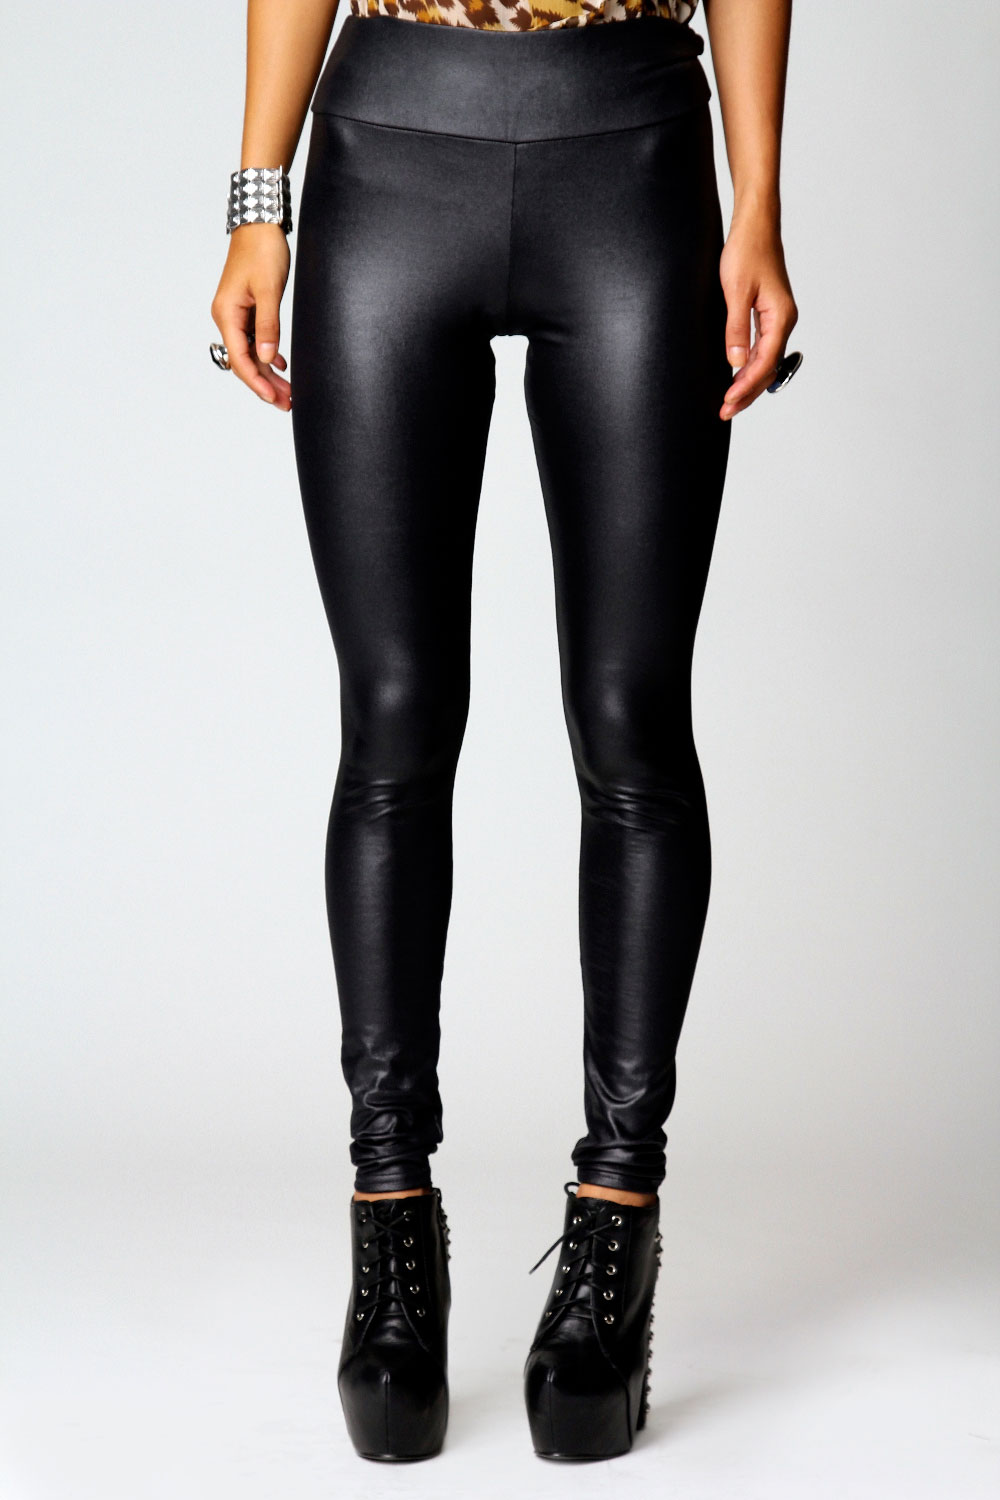 Watch Wetlook Leggings porn videos for free, here on truemfilesb5q.gq Discover the growing collection of high quality Most Relevant XXX movies and clips. No other sex tube is more popular and features more Wetlook Leggings scenes than Pornhub! Browse through our impressive selection of porn videos in HD quality on any device you own.